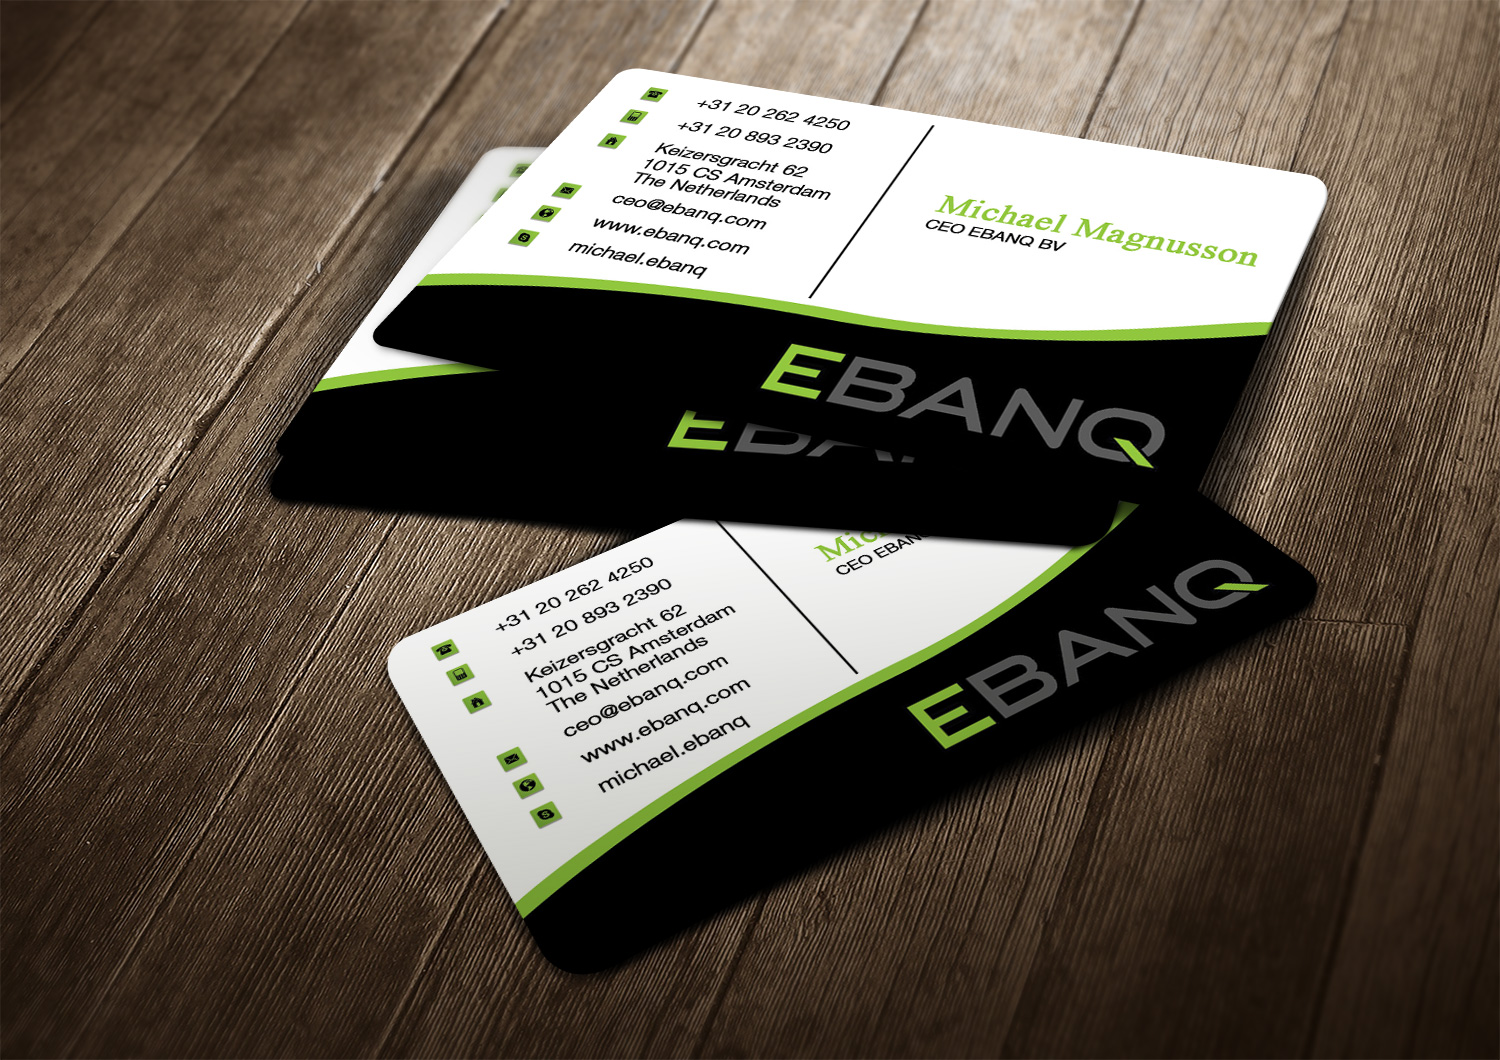 Modern professional financial business card design for ebanq business card design by creation lanka for ebanq fintech sl design 5088203 reheart Image collections